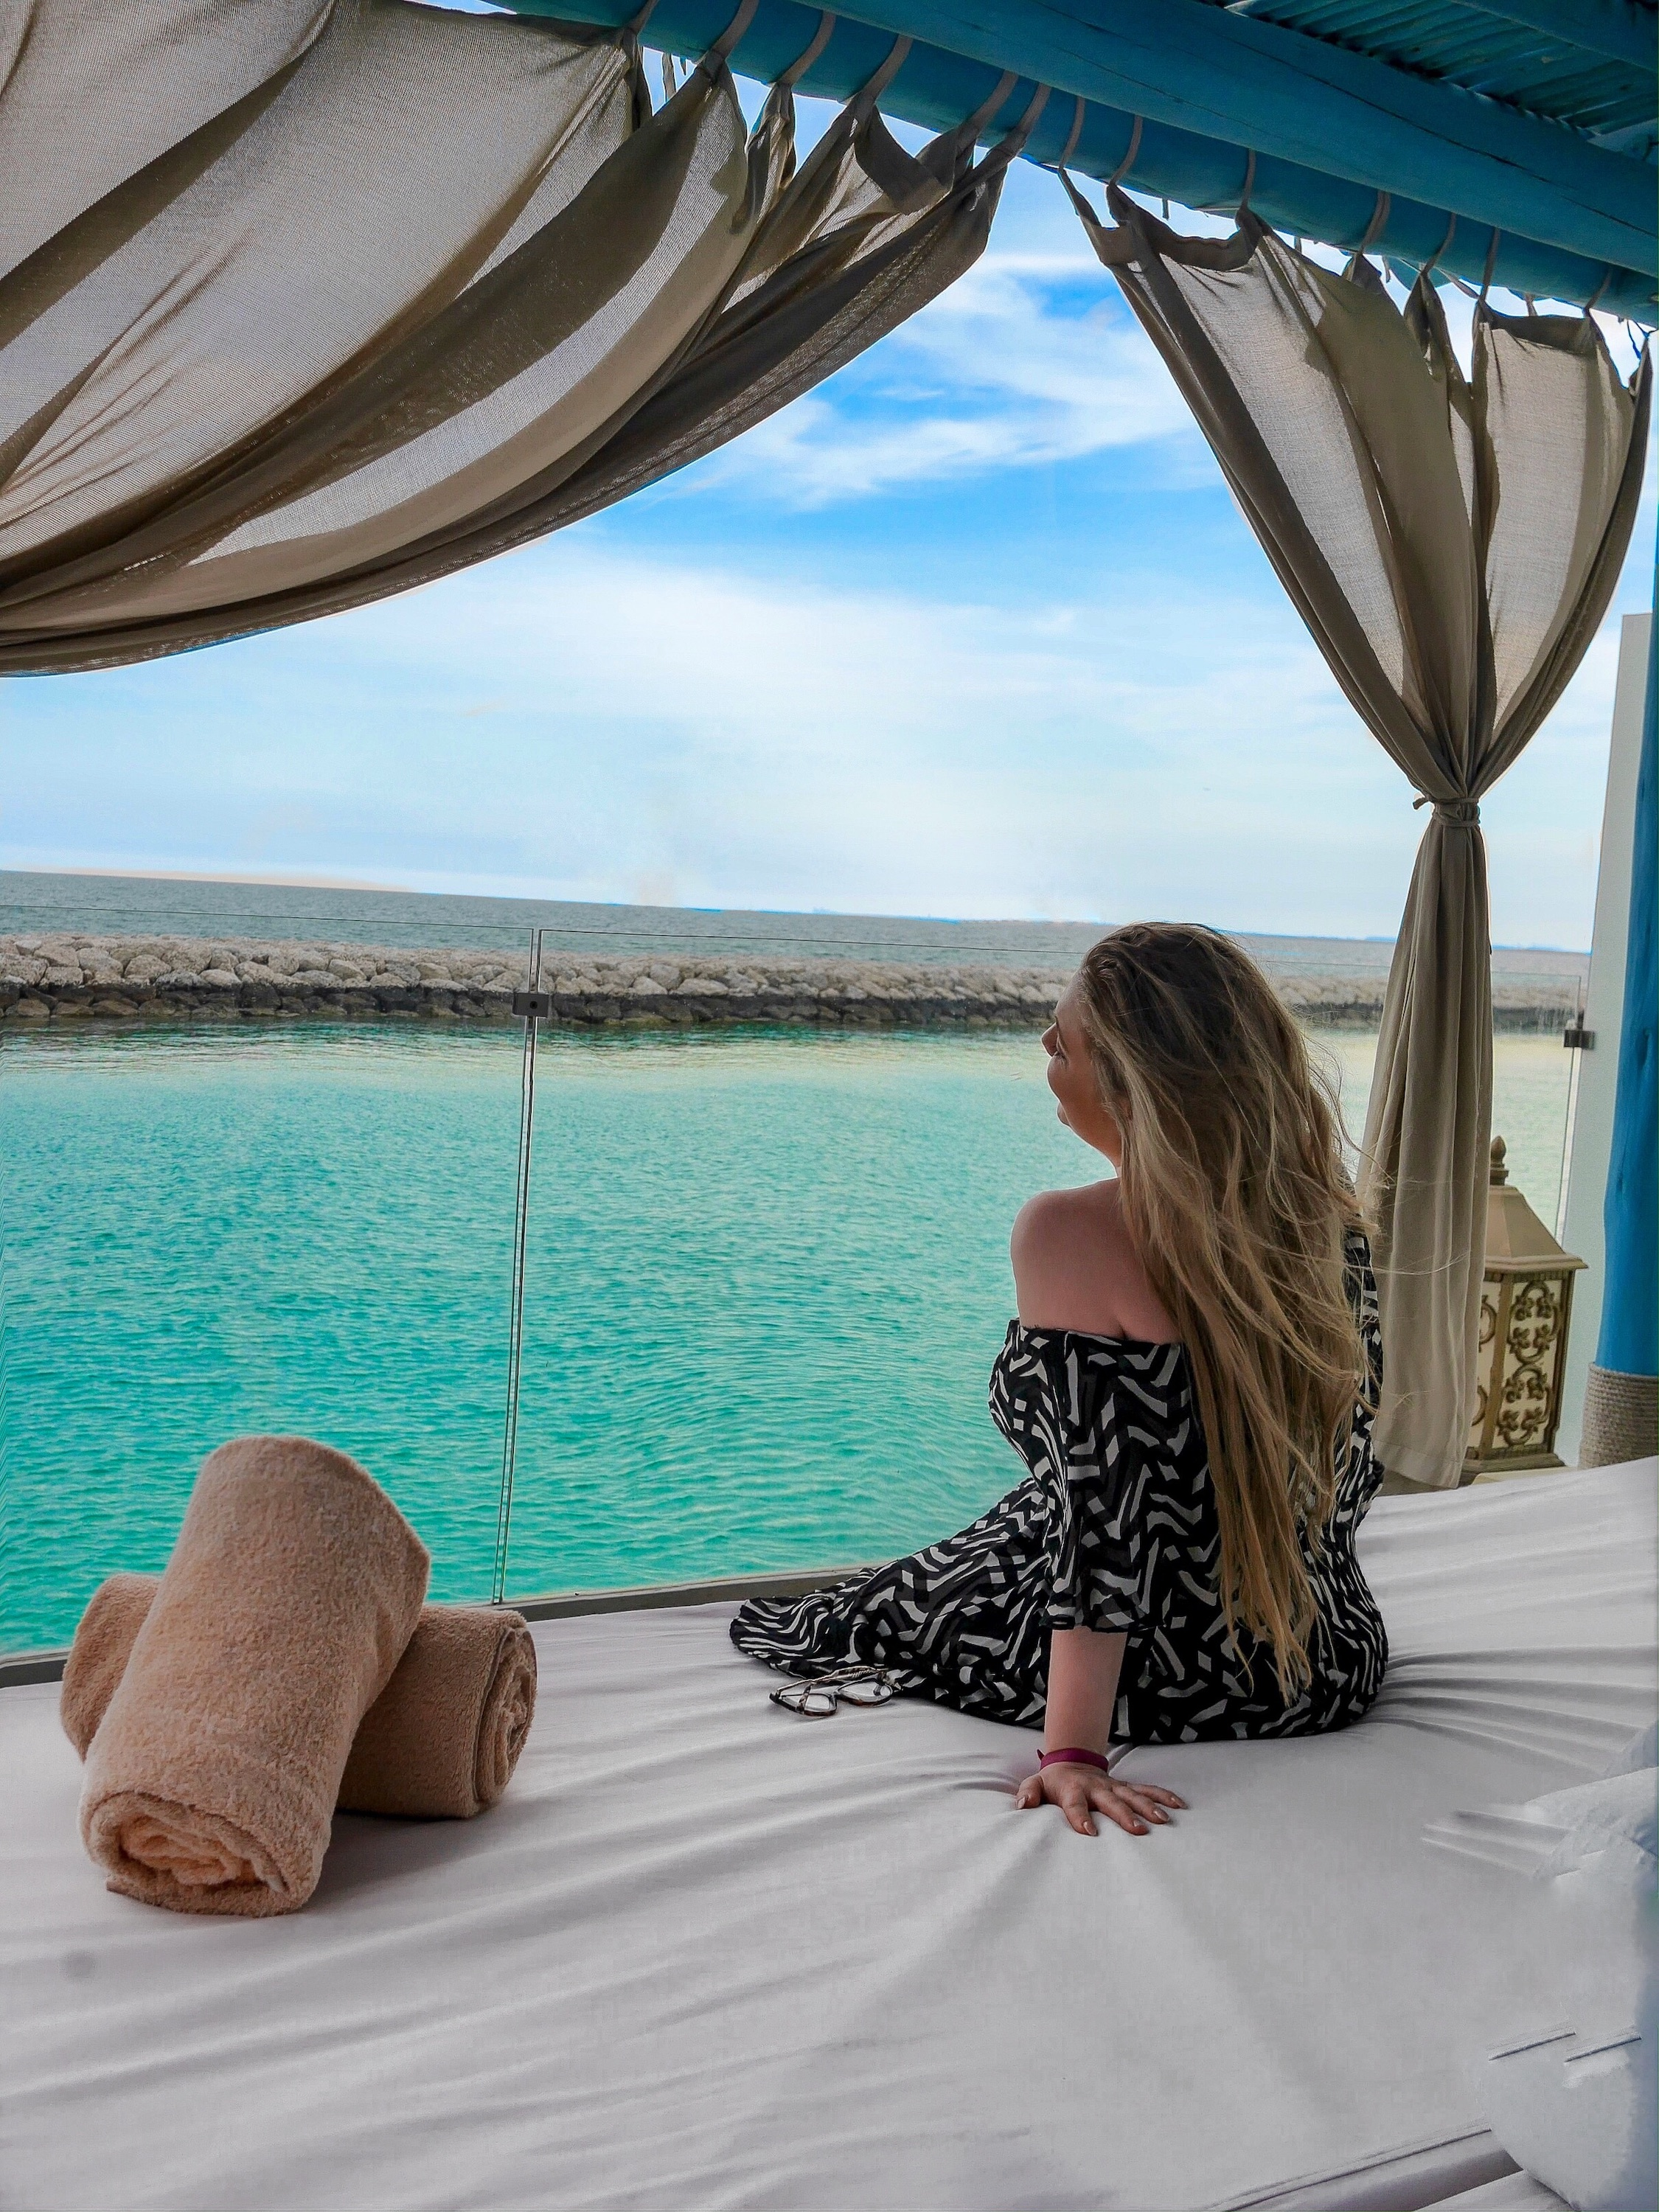 Maldives of Qatar - Banana Island 3 bedroom villa | Visit Qatar | Doha, the capital of Qatar is located in the Middle East and the World Cup 2022 location. Find out how I spent 4 days on my visit to Qatar | Travel Guide & Tips | Elle Blonde Luxury Lifestyle Destination Blog